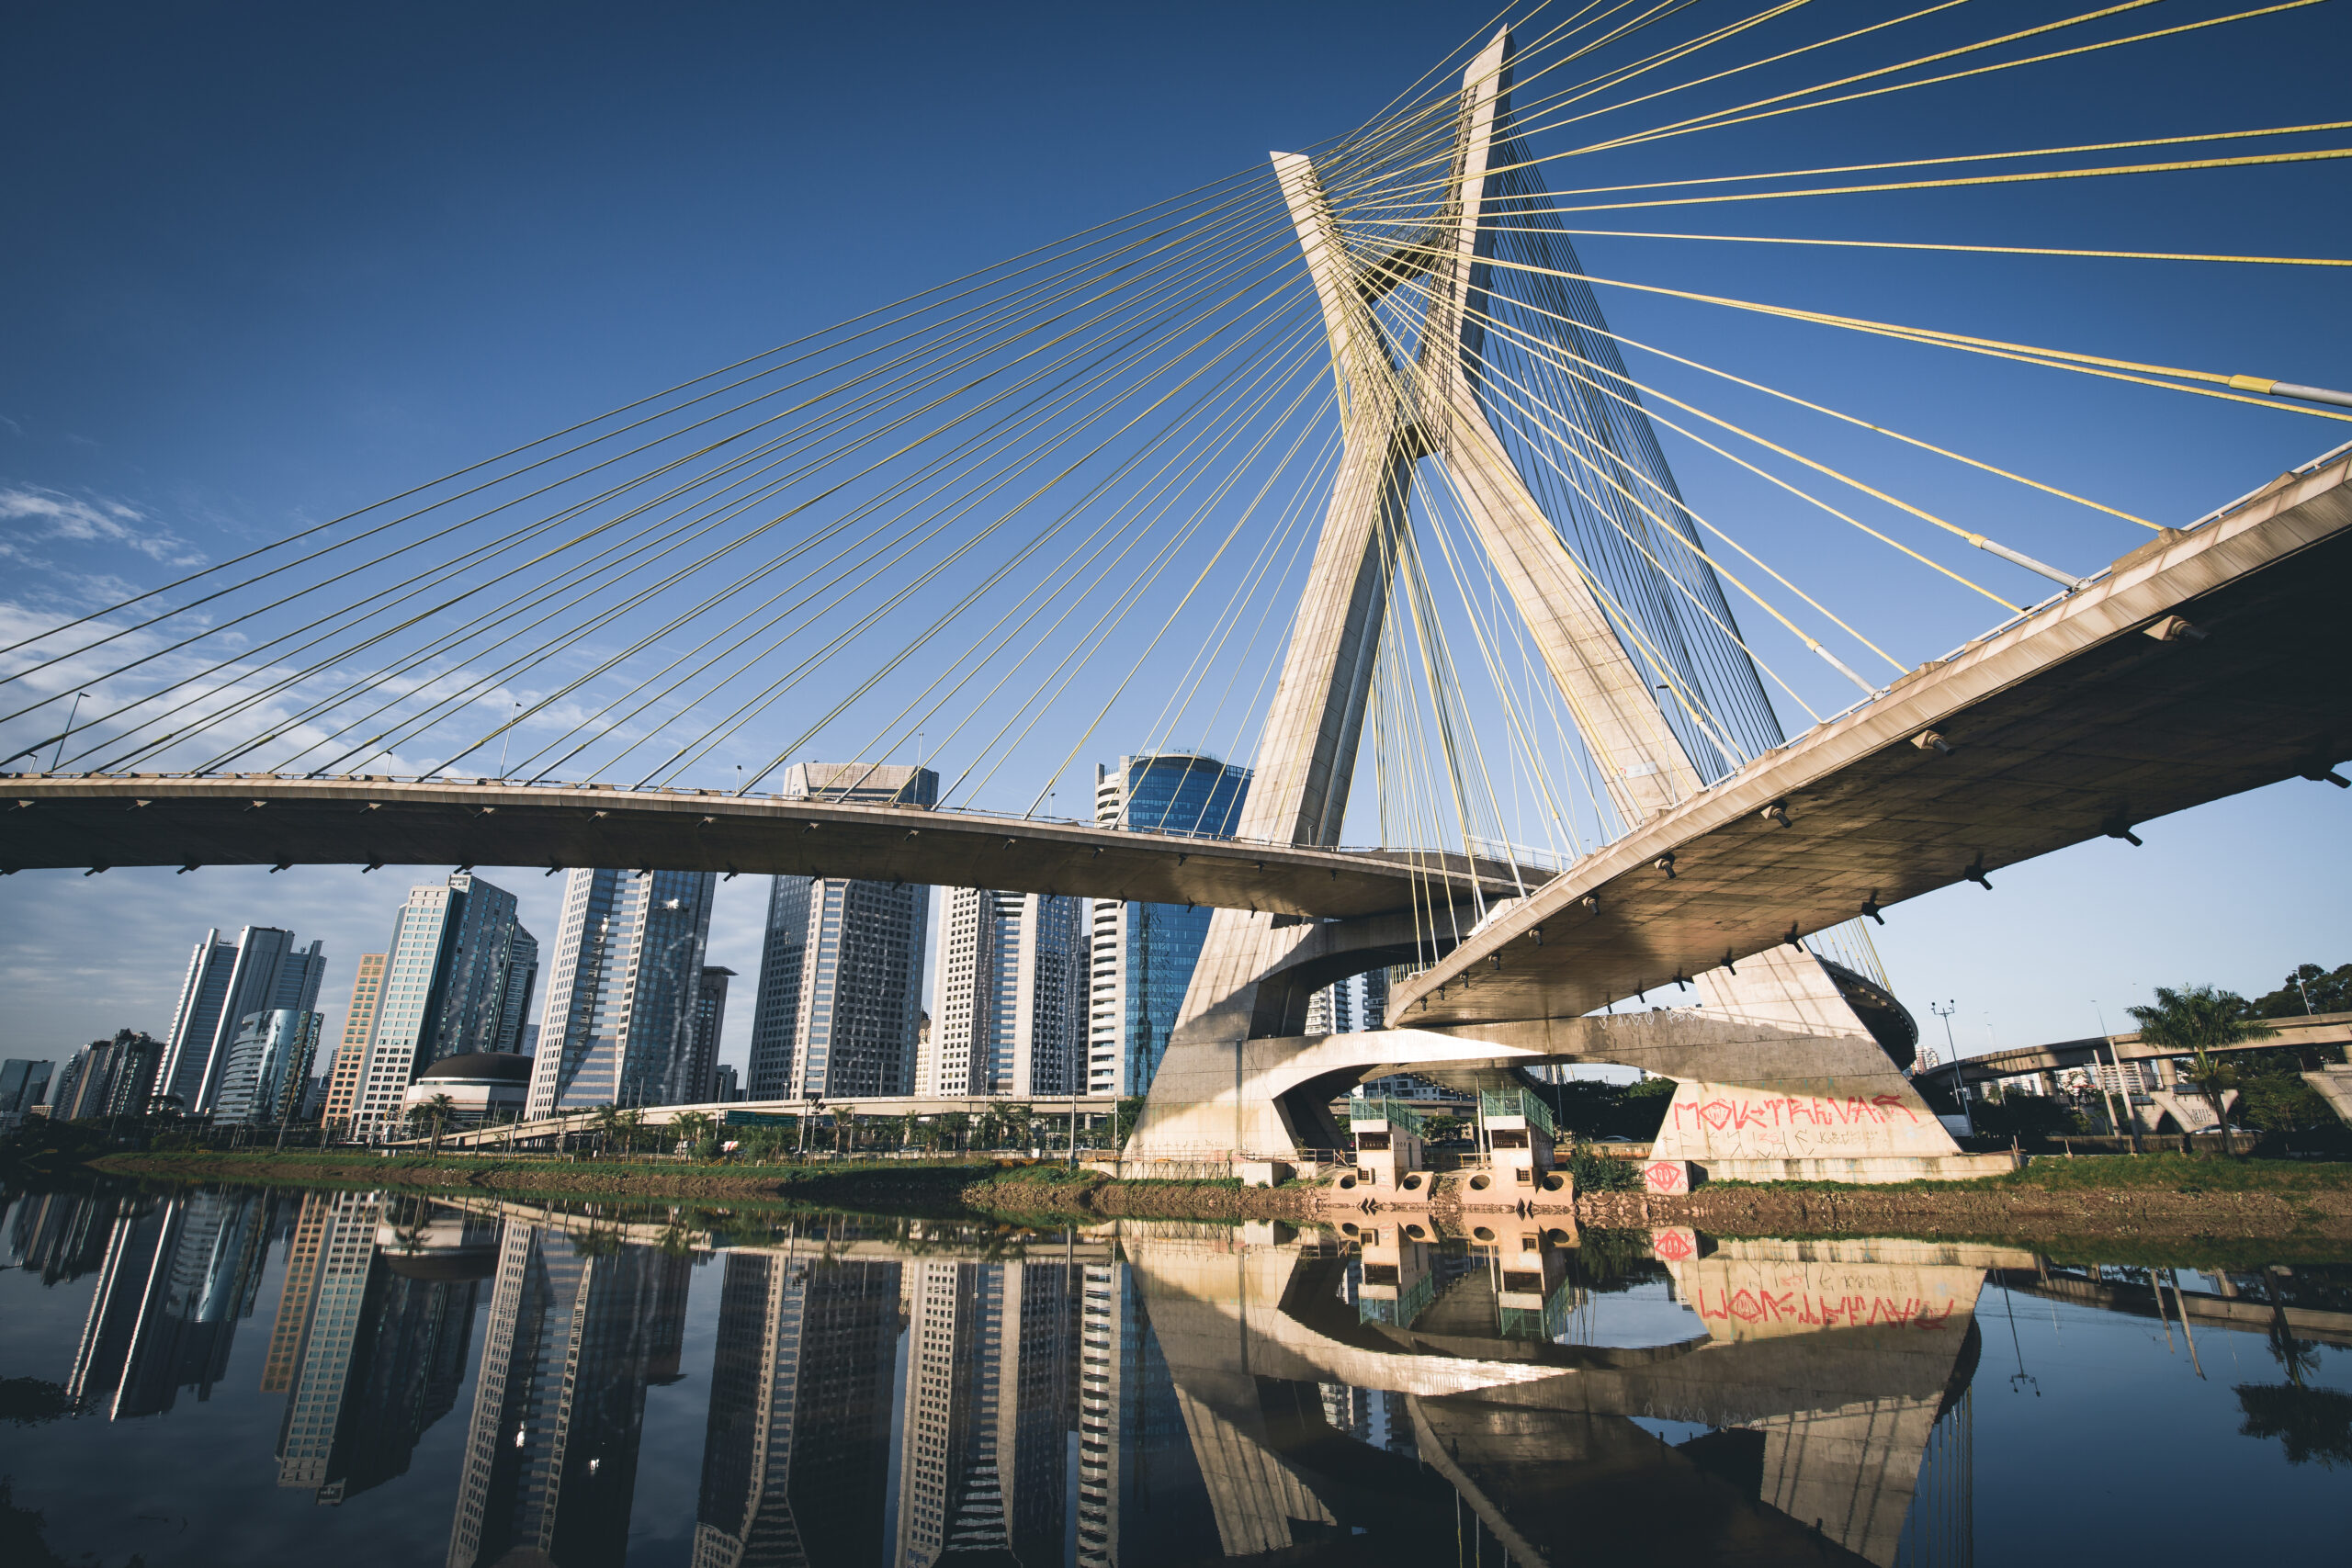 The Atlas Logistic Network is linking Sao Paulo, Brazil to the world 1